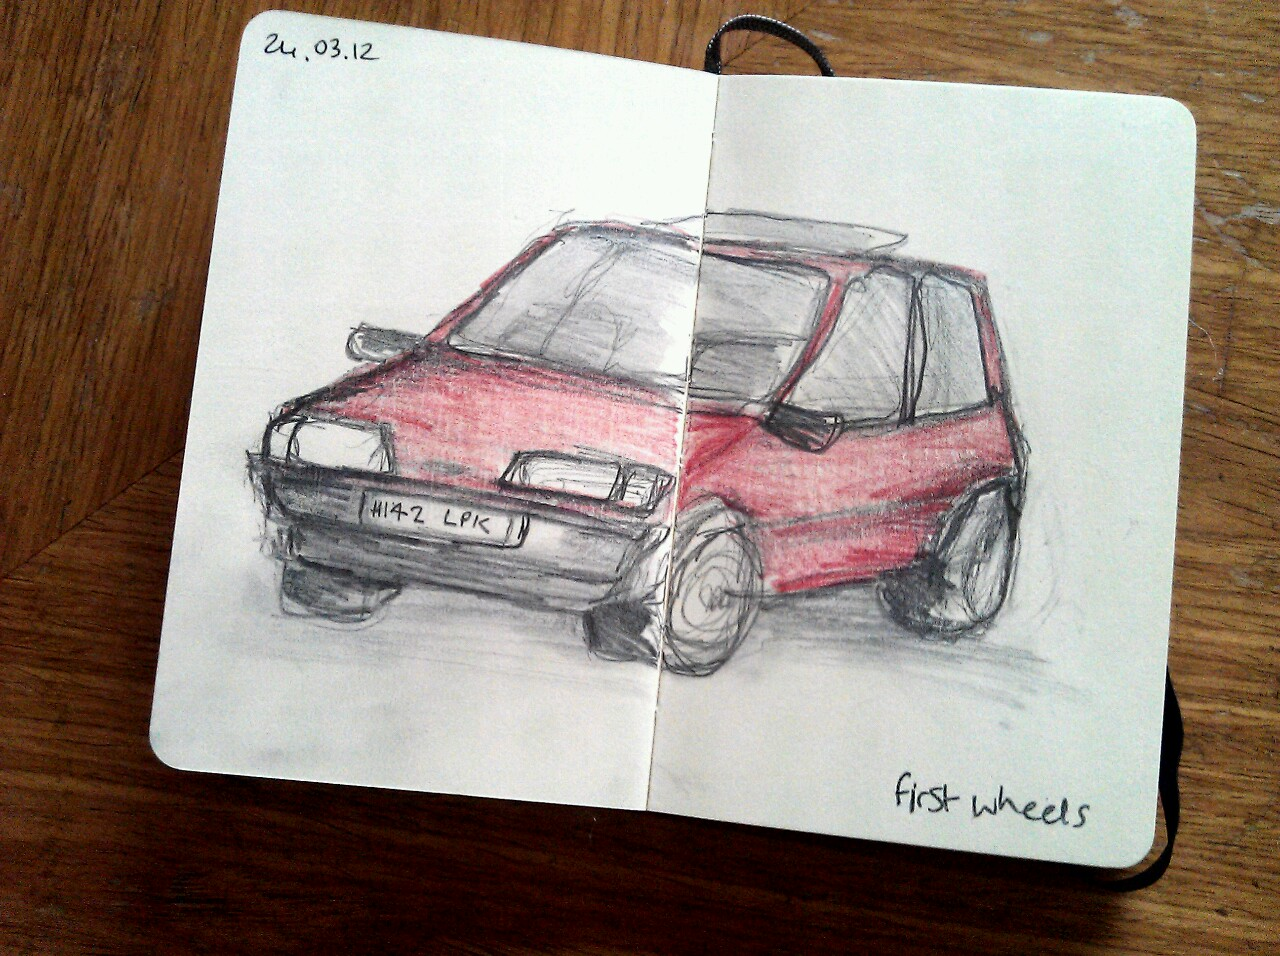 365 drawings later … day 53 … first wheels (today I learnt a can't draw cars)